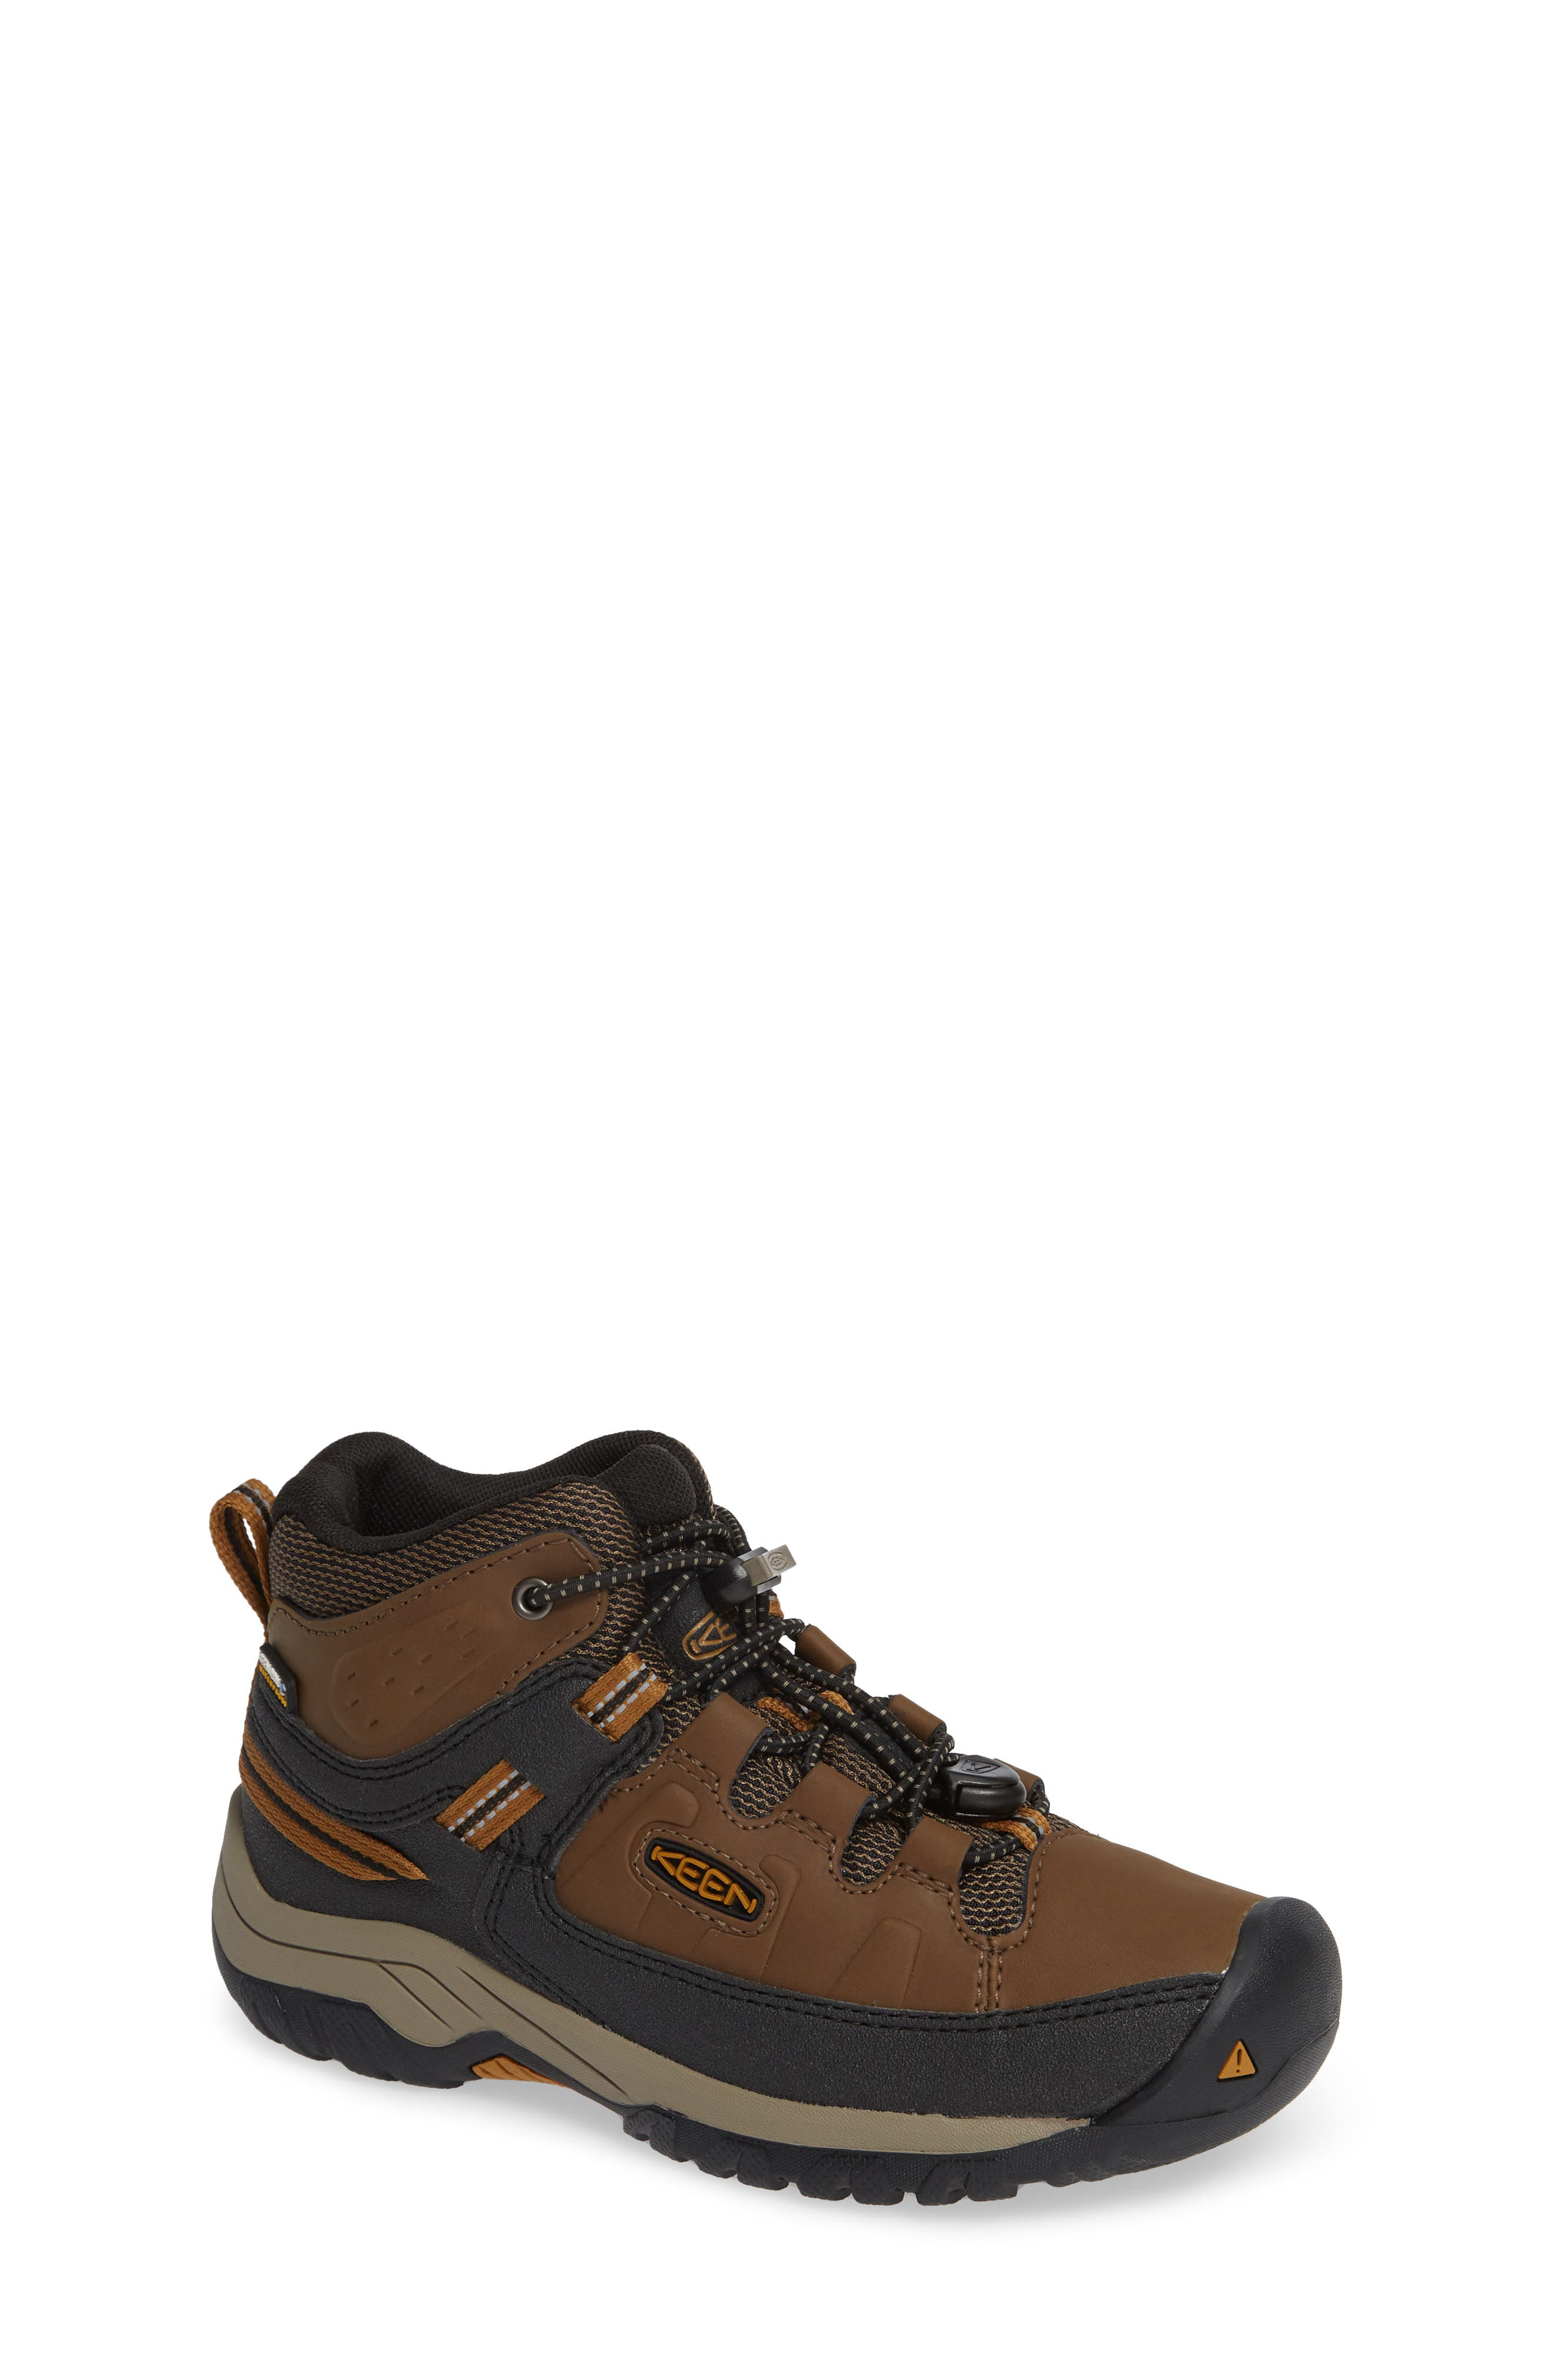 Targhee Mid Waterproof Hiking Boot,                             Main thumbnail 1, color,                             DARK EARTH/ GOLDEN BROWN